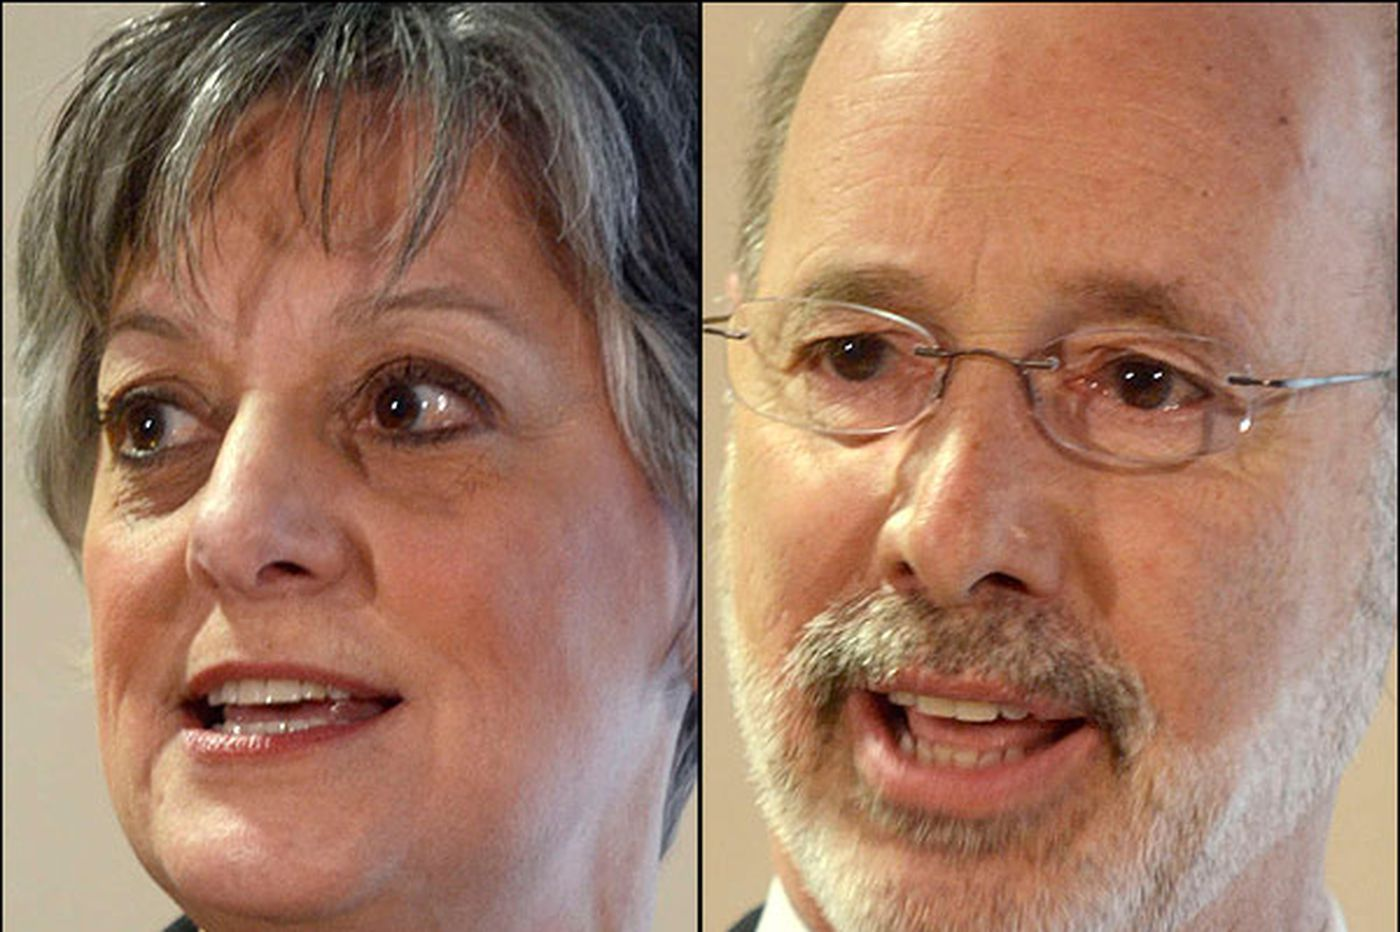 Wolf releases details of loan to his campaign